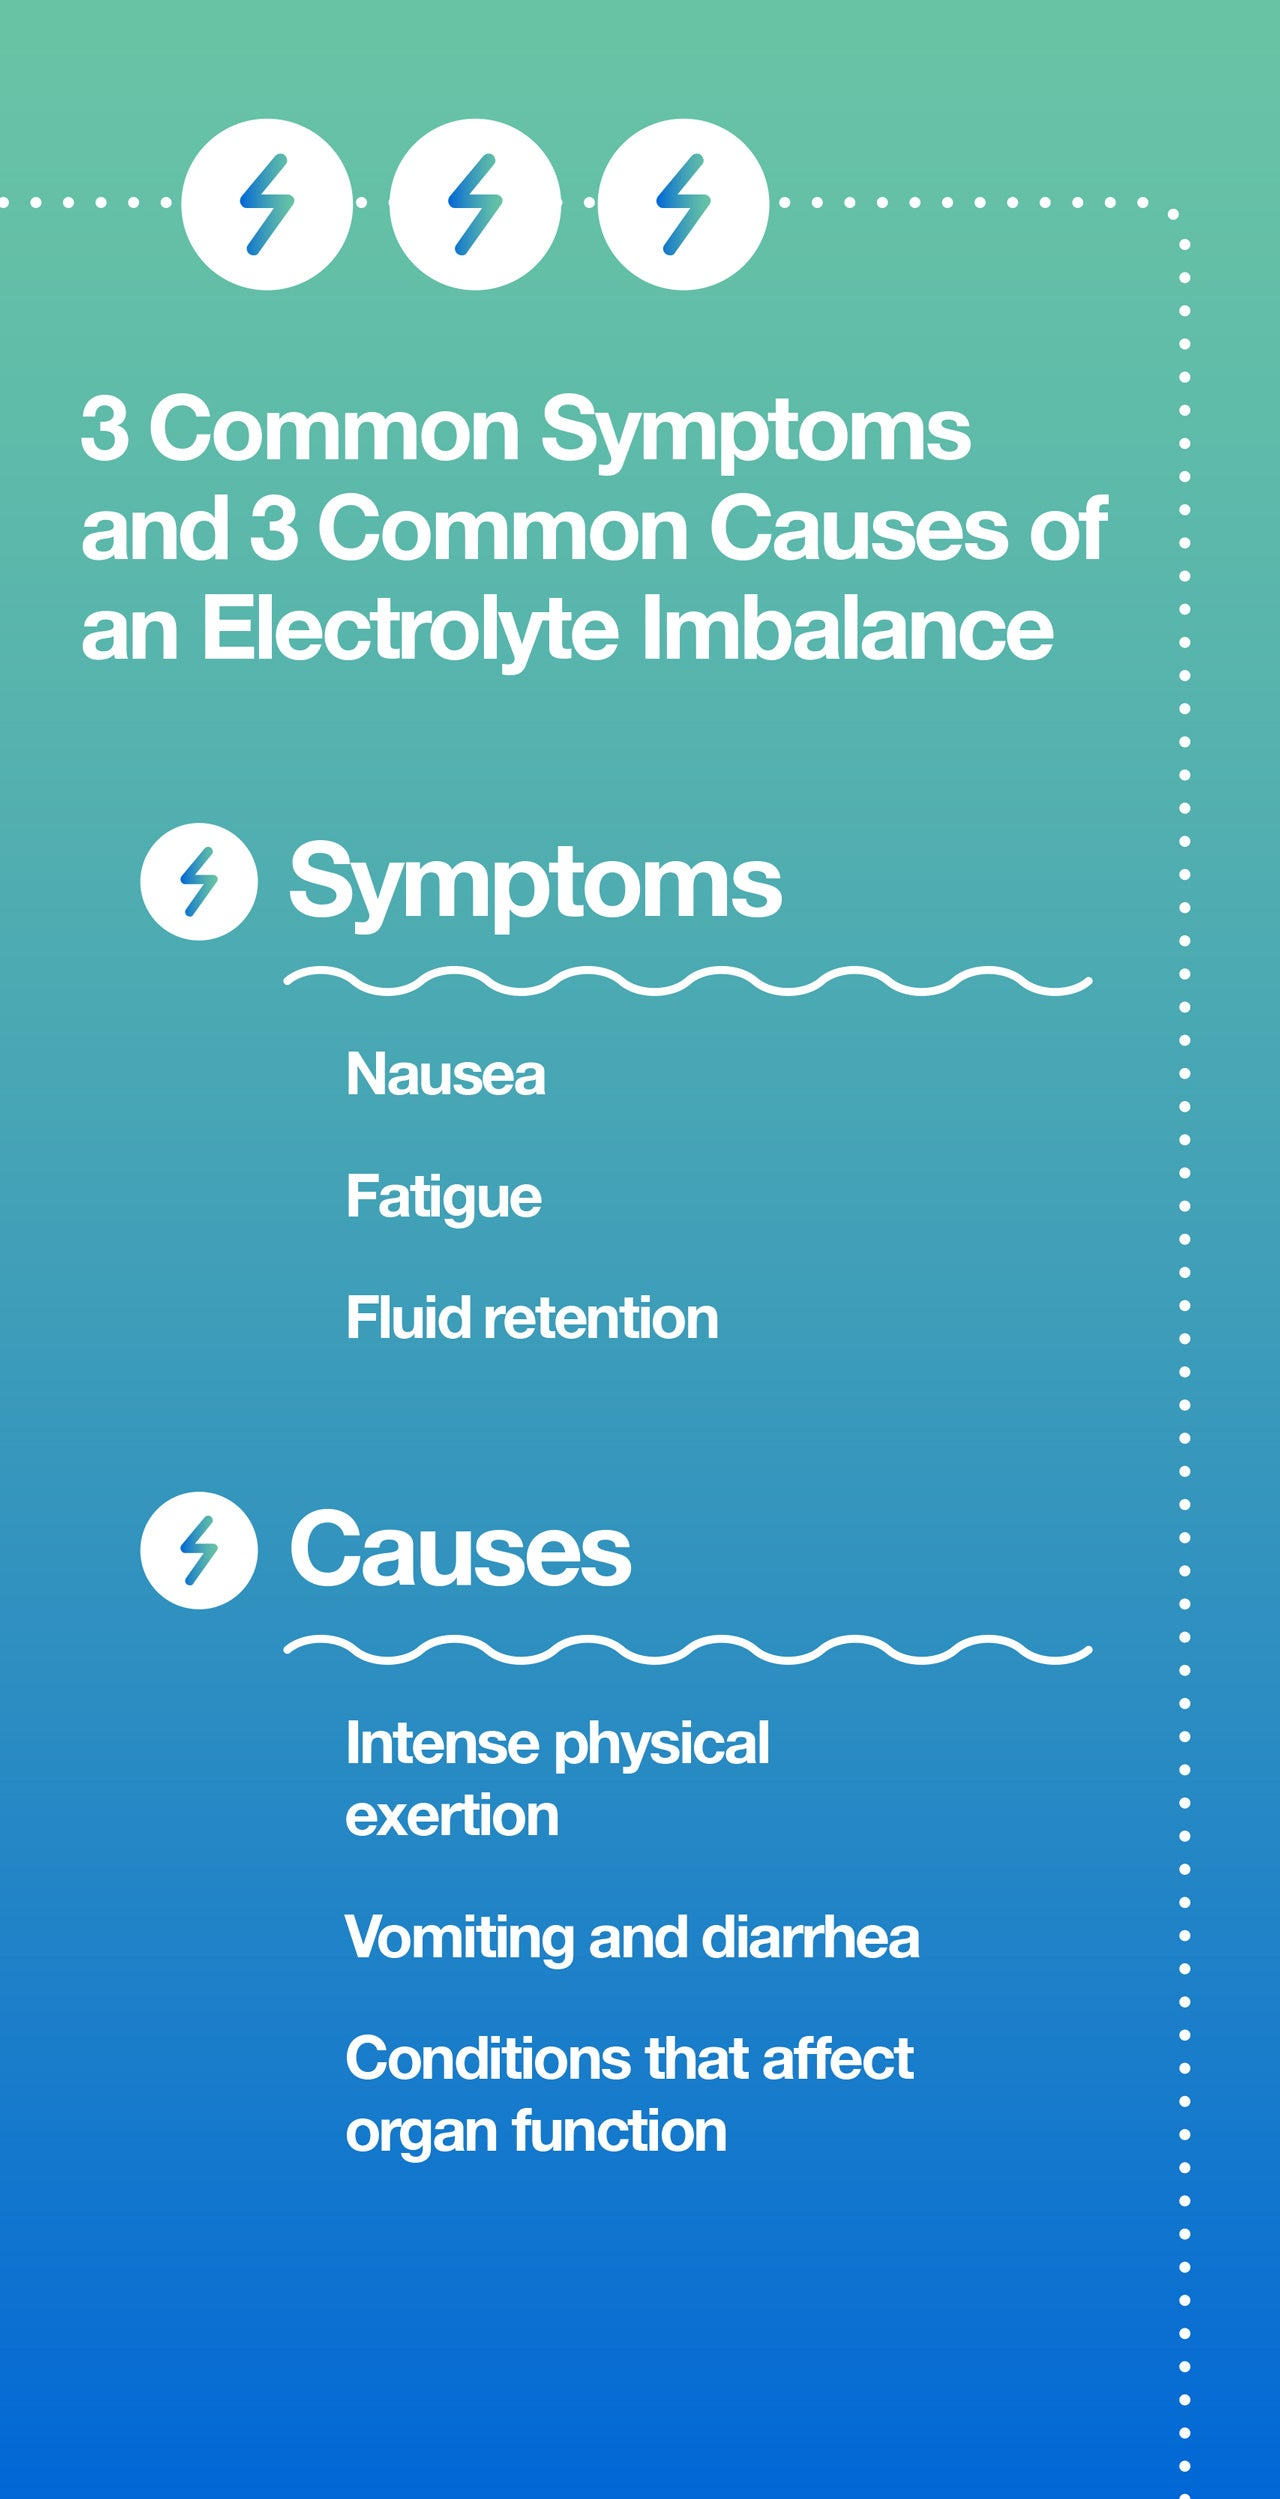 How to maintain an optimal electrolyte balance.